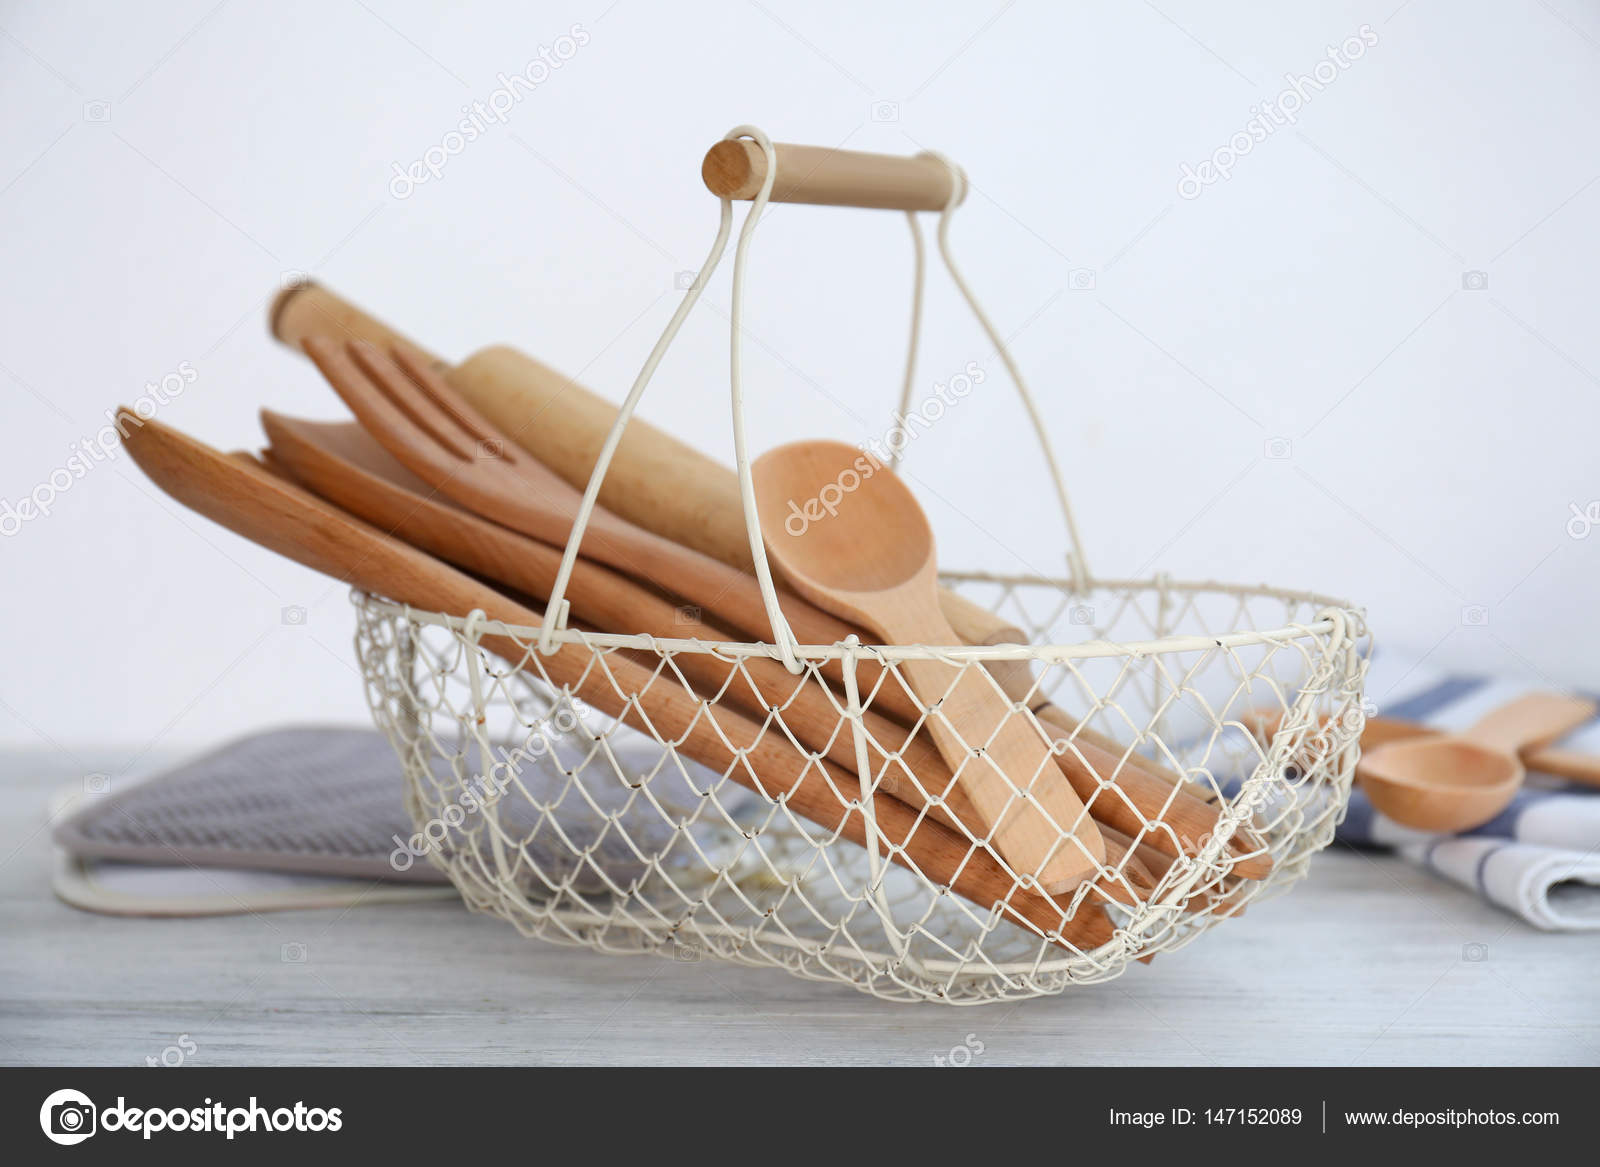 Set Of Kitchen Utensils Stock Photo Belchonock 147152089